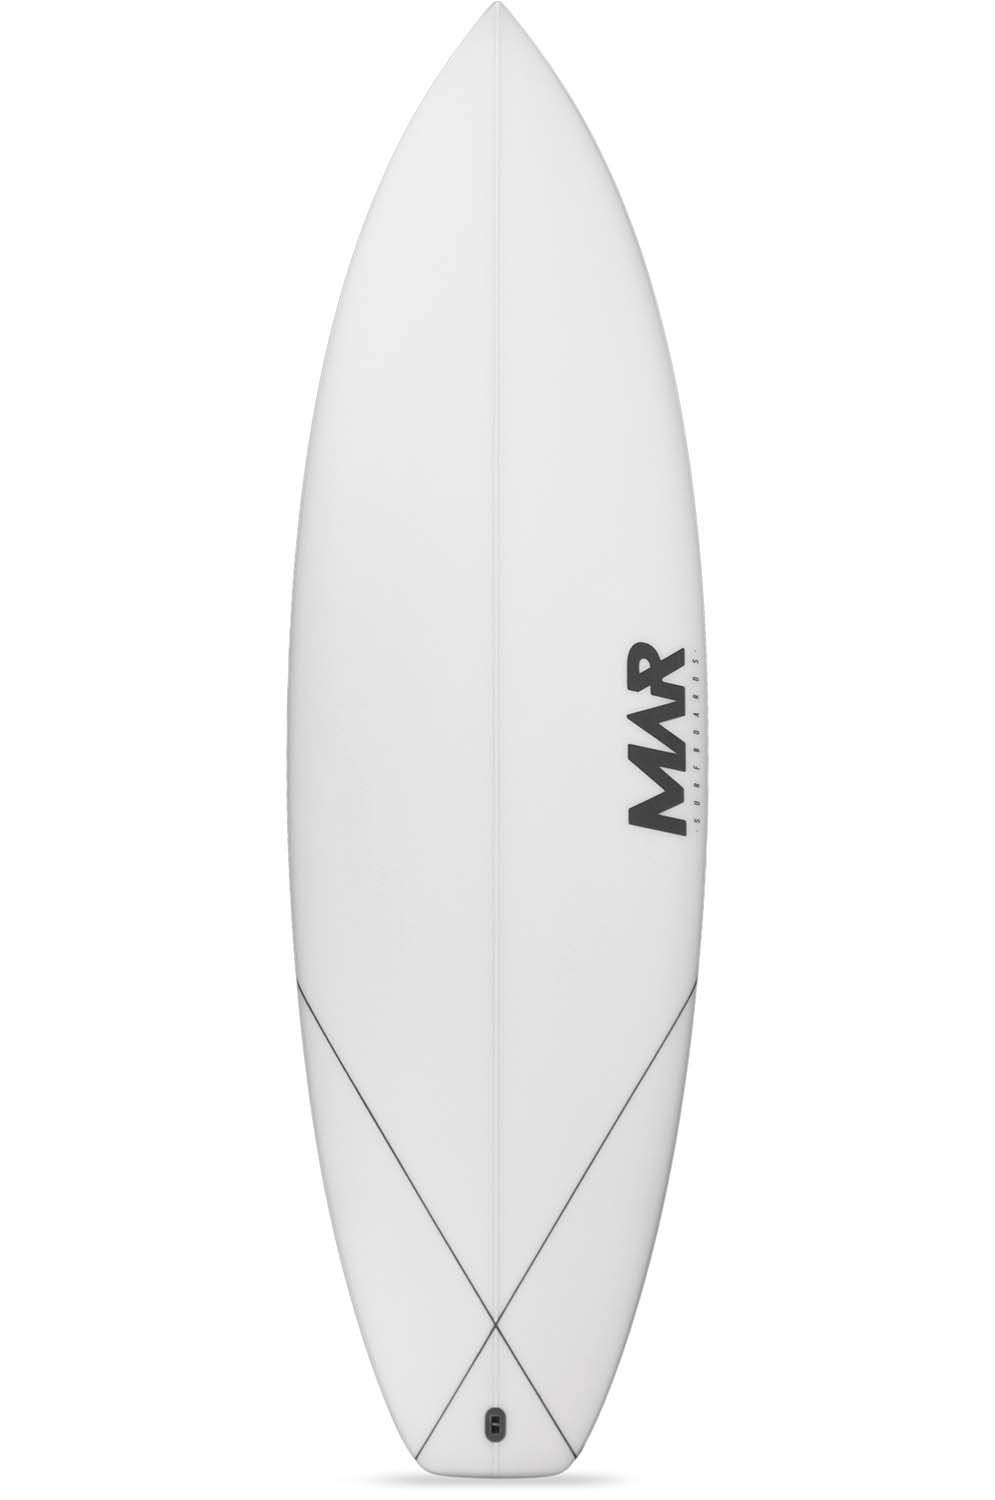 Prancha Surf Mar PARROT 5'6 Squash Tail - White FCS II 5ft6